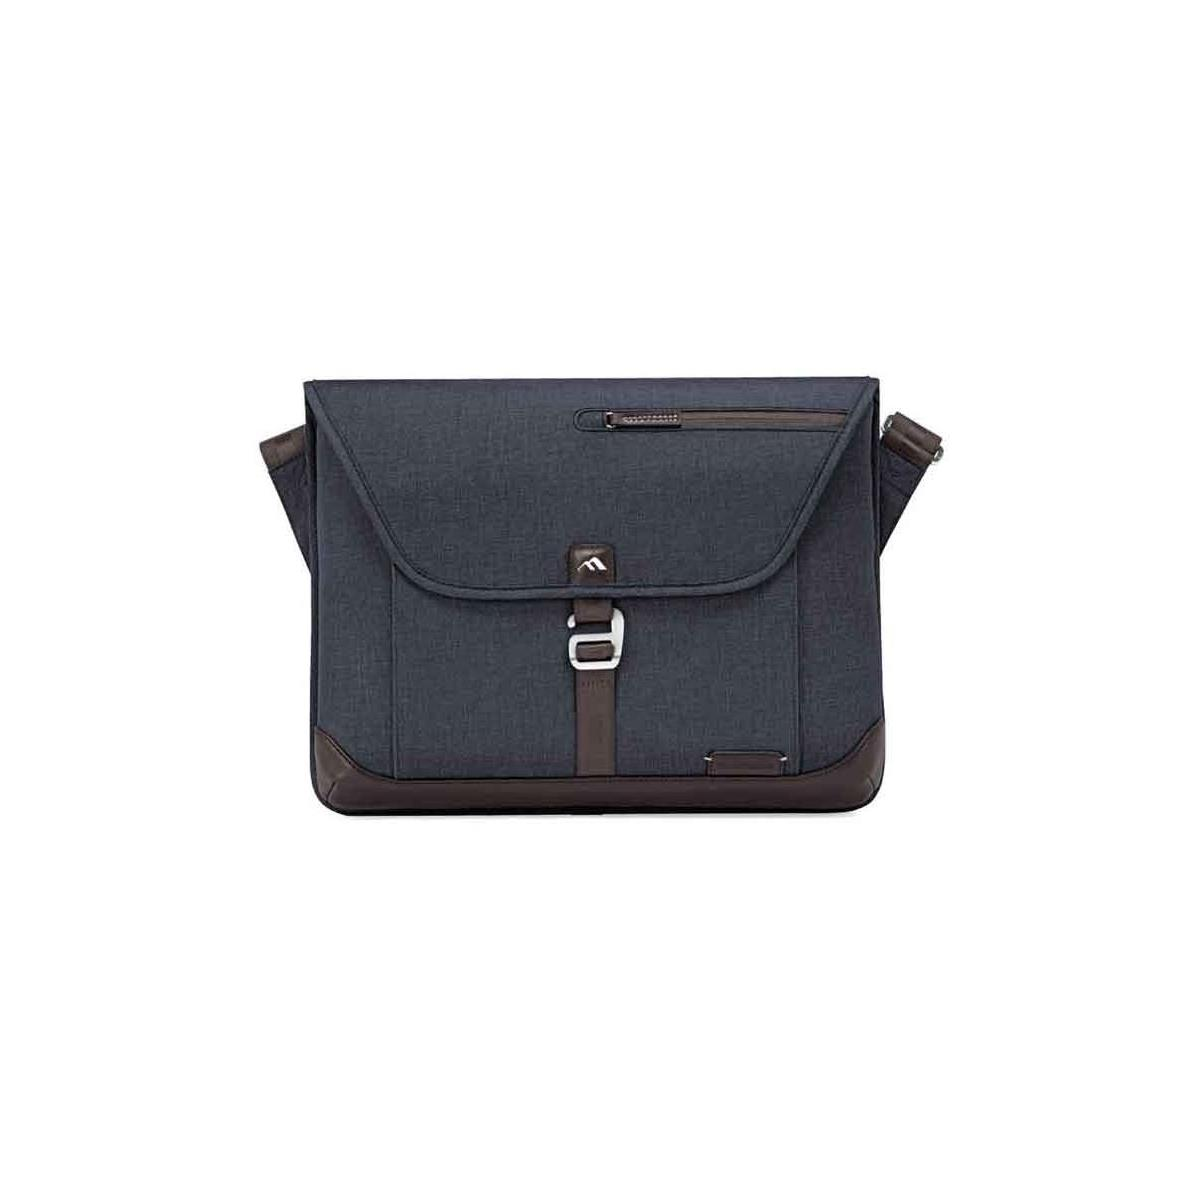 Brenthaven Collins Sleeve Plus Laptop Shoulder Bag Sale $19.95  Free Shipping from Adorama